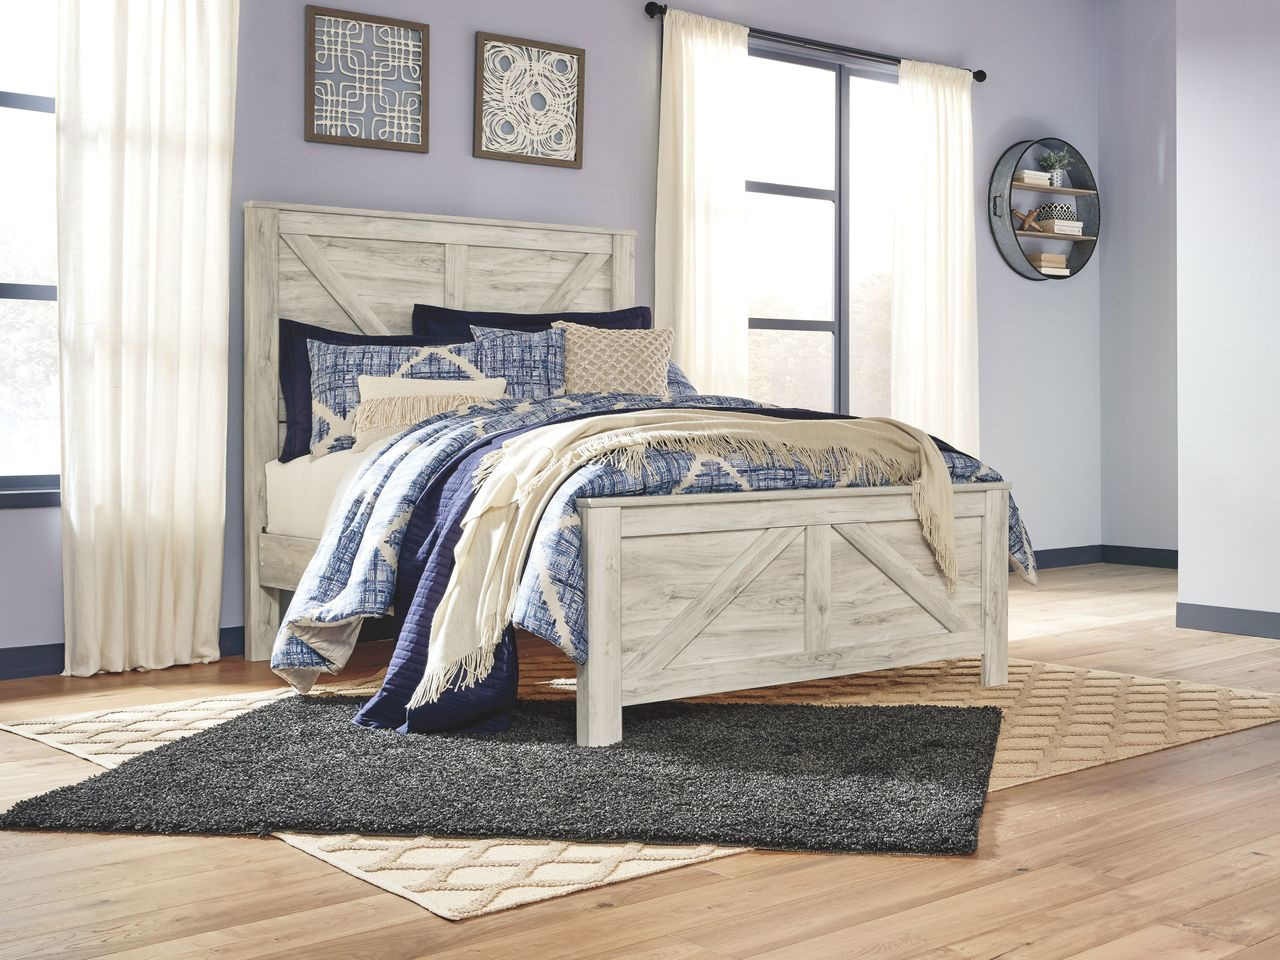 Picture of: The Bellaby Whitewash Queen Panel Bed Available At Nashco Furniture And Mattress Serving Nashville Tn